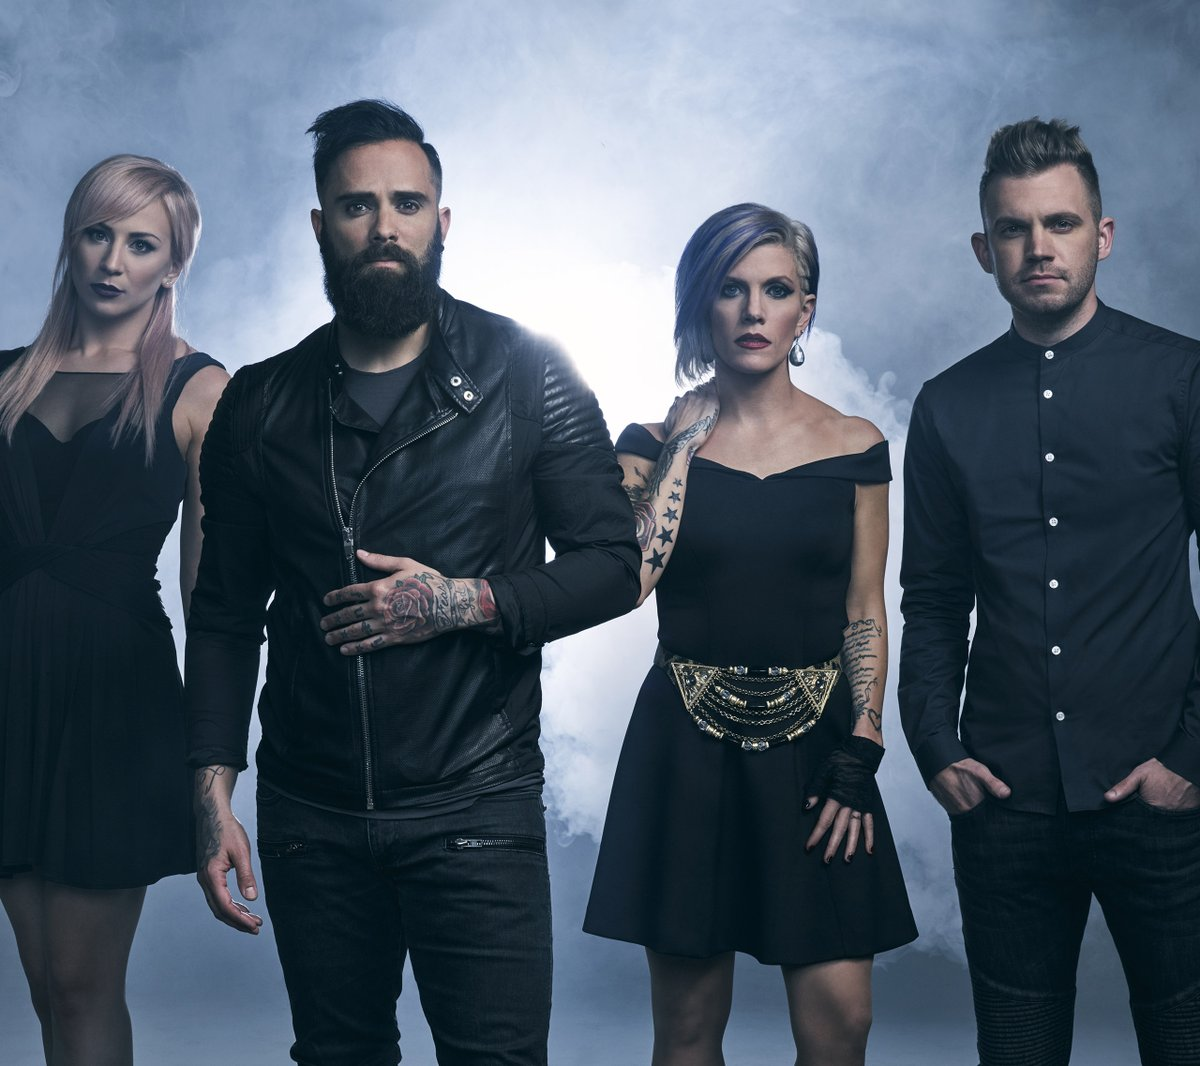 .@skilletmusic is joining us this Friday! Join us for a post-game concert on the @Summerfest Stage!  → https://bit.ly/30x0jrapic.twitter.com/NnmvEOhGdf